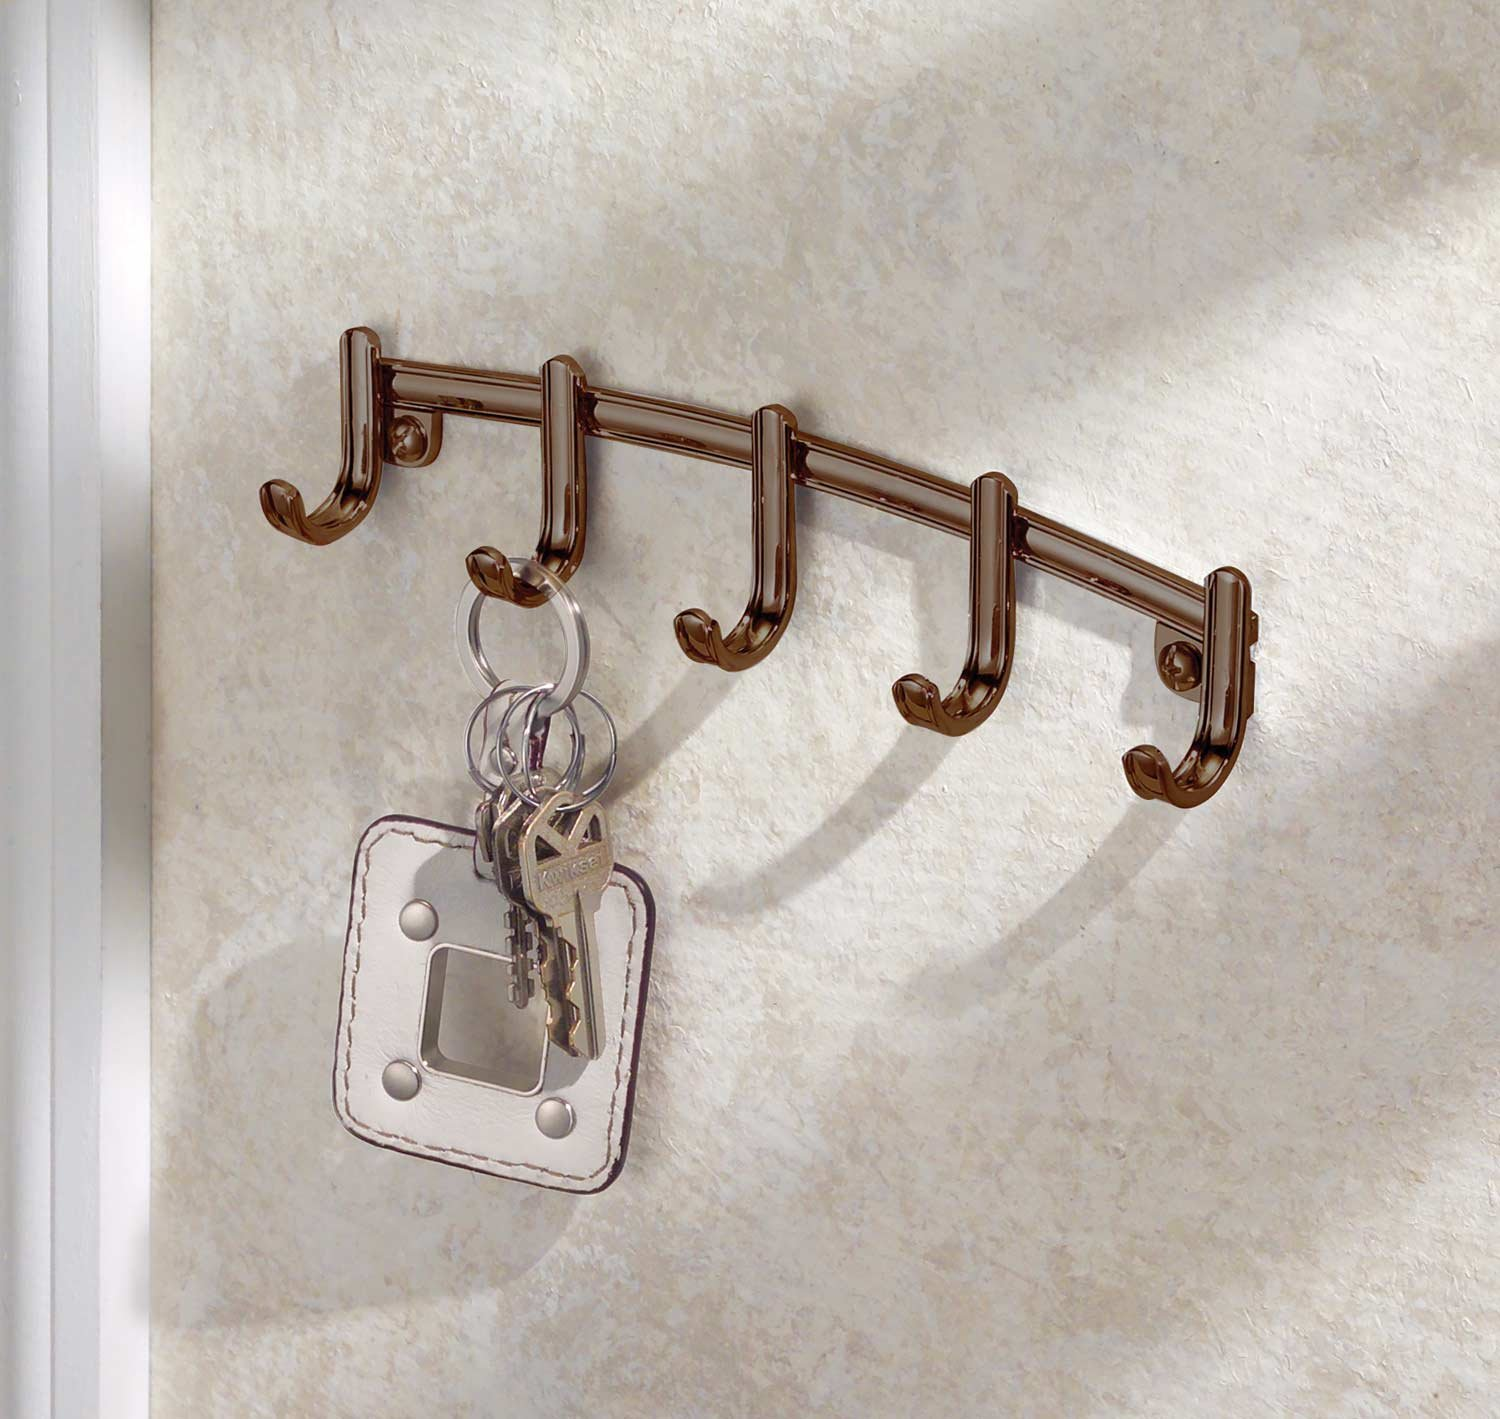 Wall Key Racks For Home And Office Decorative And Animal